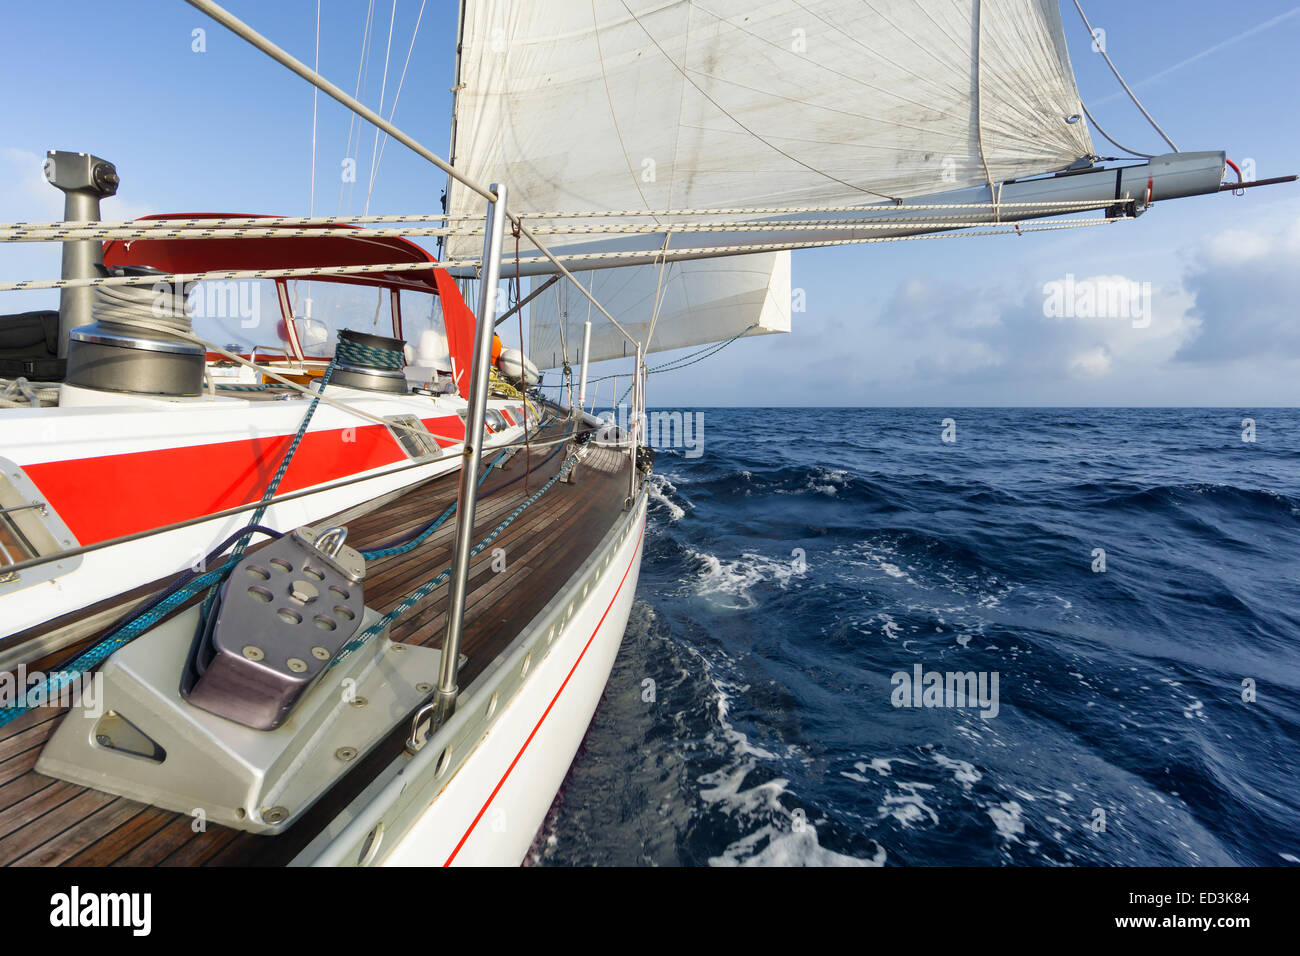 sail boat navigating on the waves - Stock Image